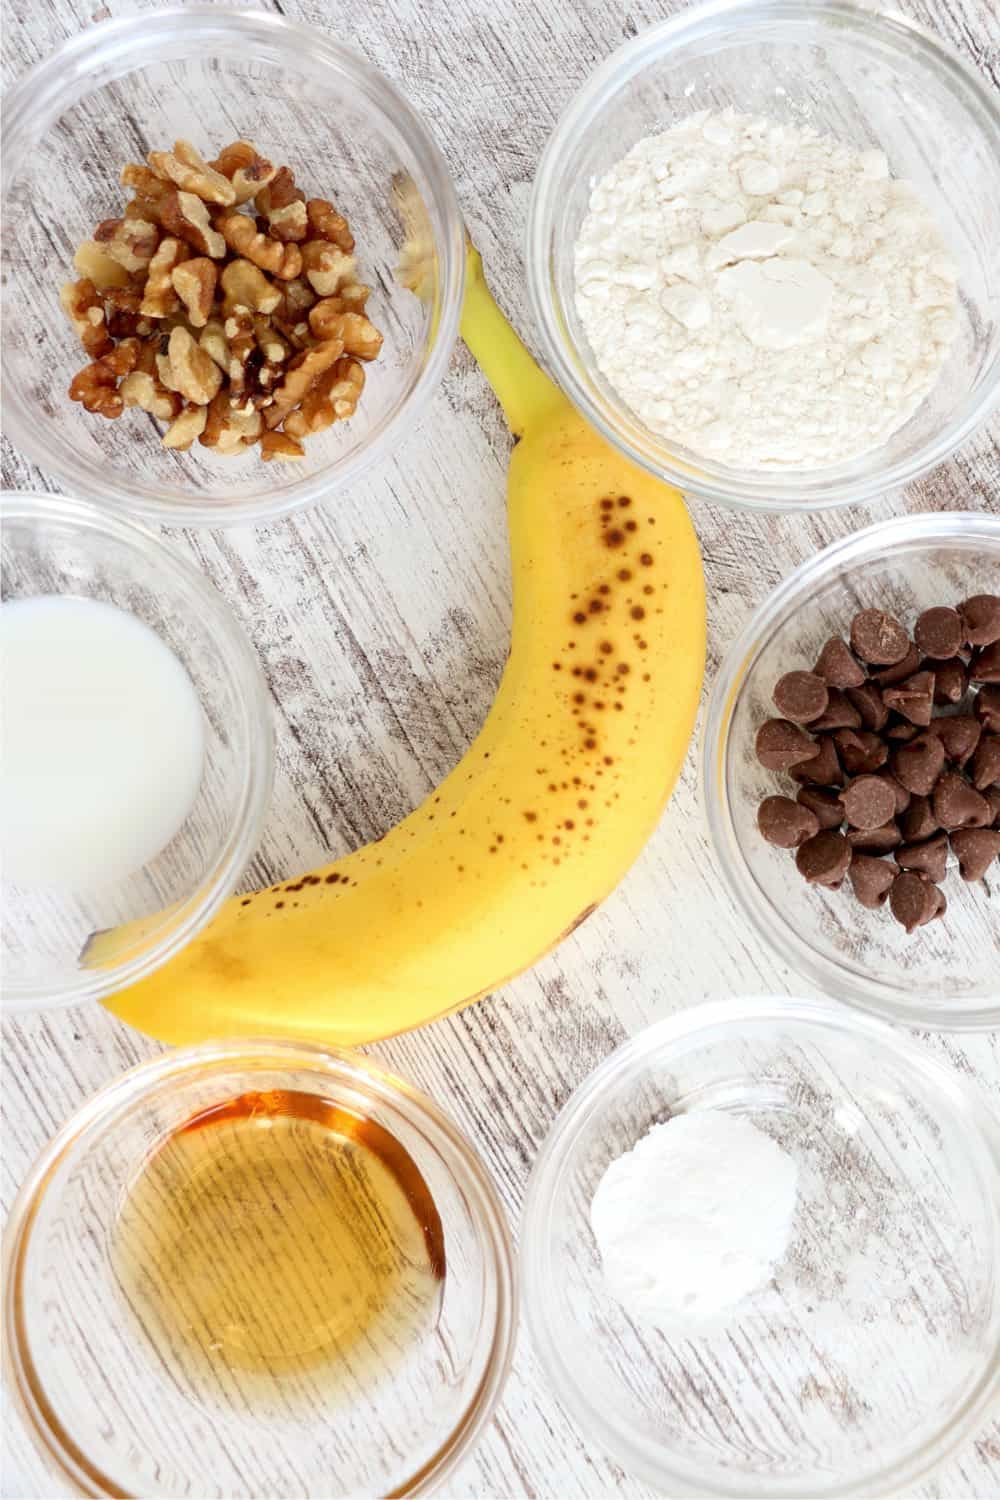 A banana in its peel surrounded by clear bowls filled with walnuts, flour, milk, maple syrup, baking powder and chocolate chips